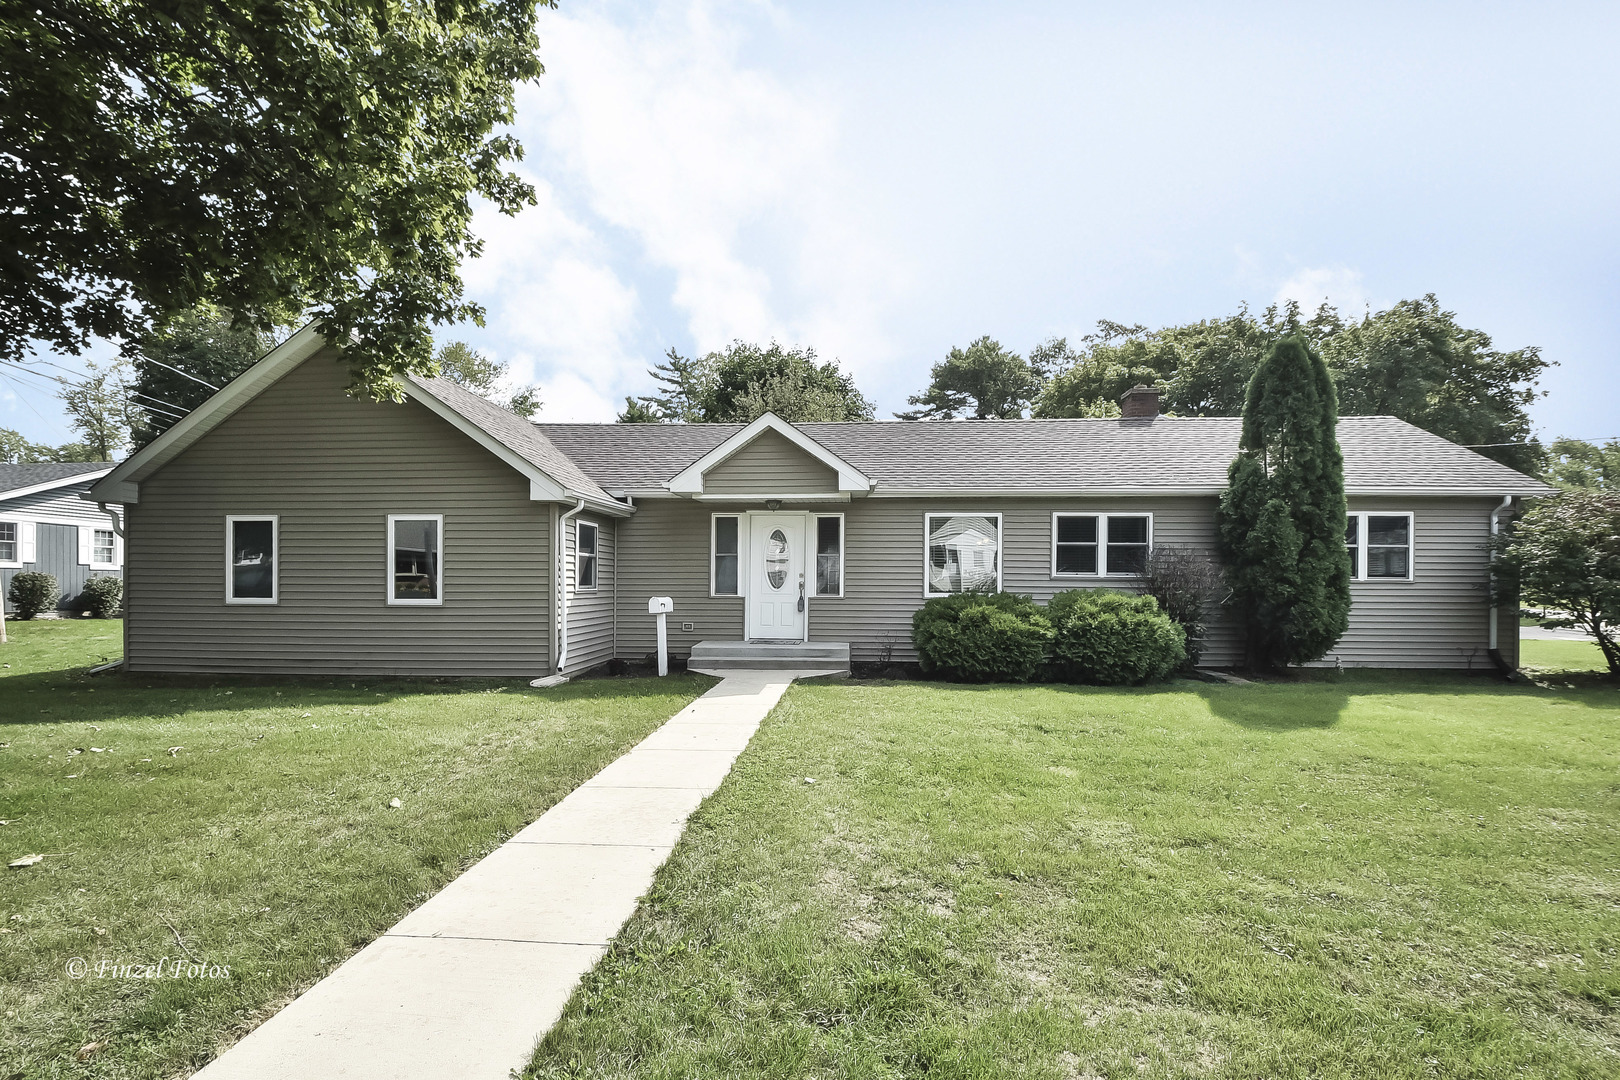 Photo for 199 College Street, Crystal Lake, IL 60014 (MLS # 10883308)